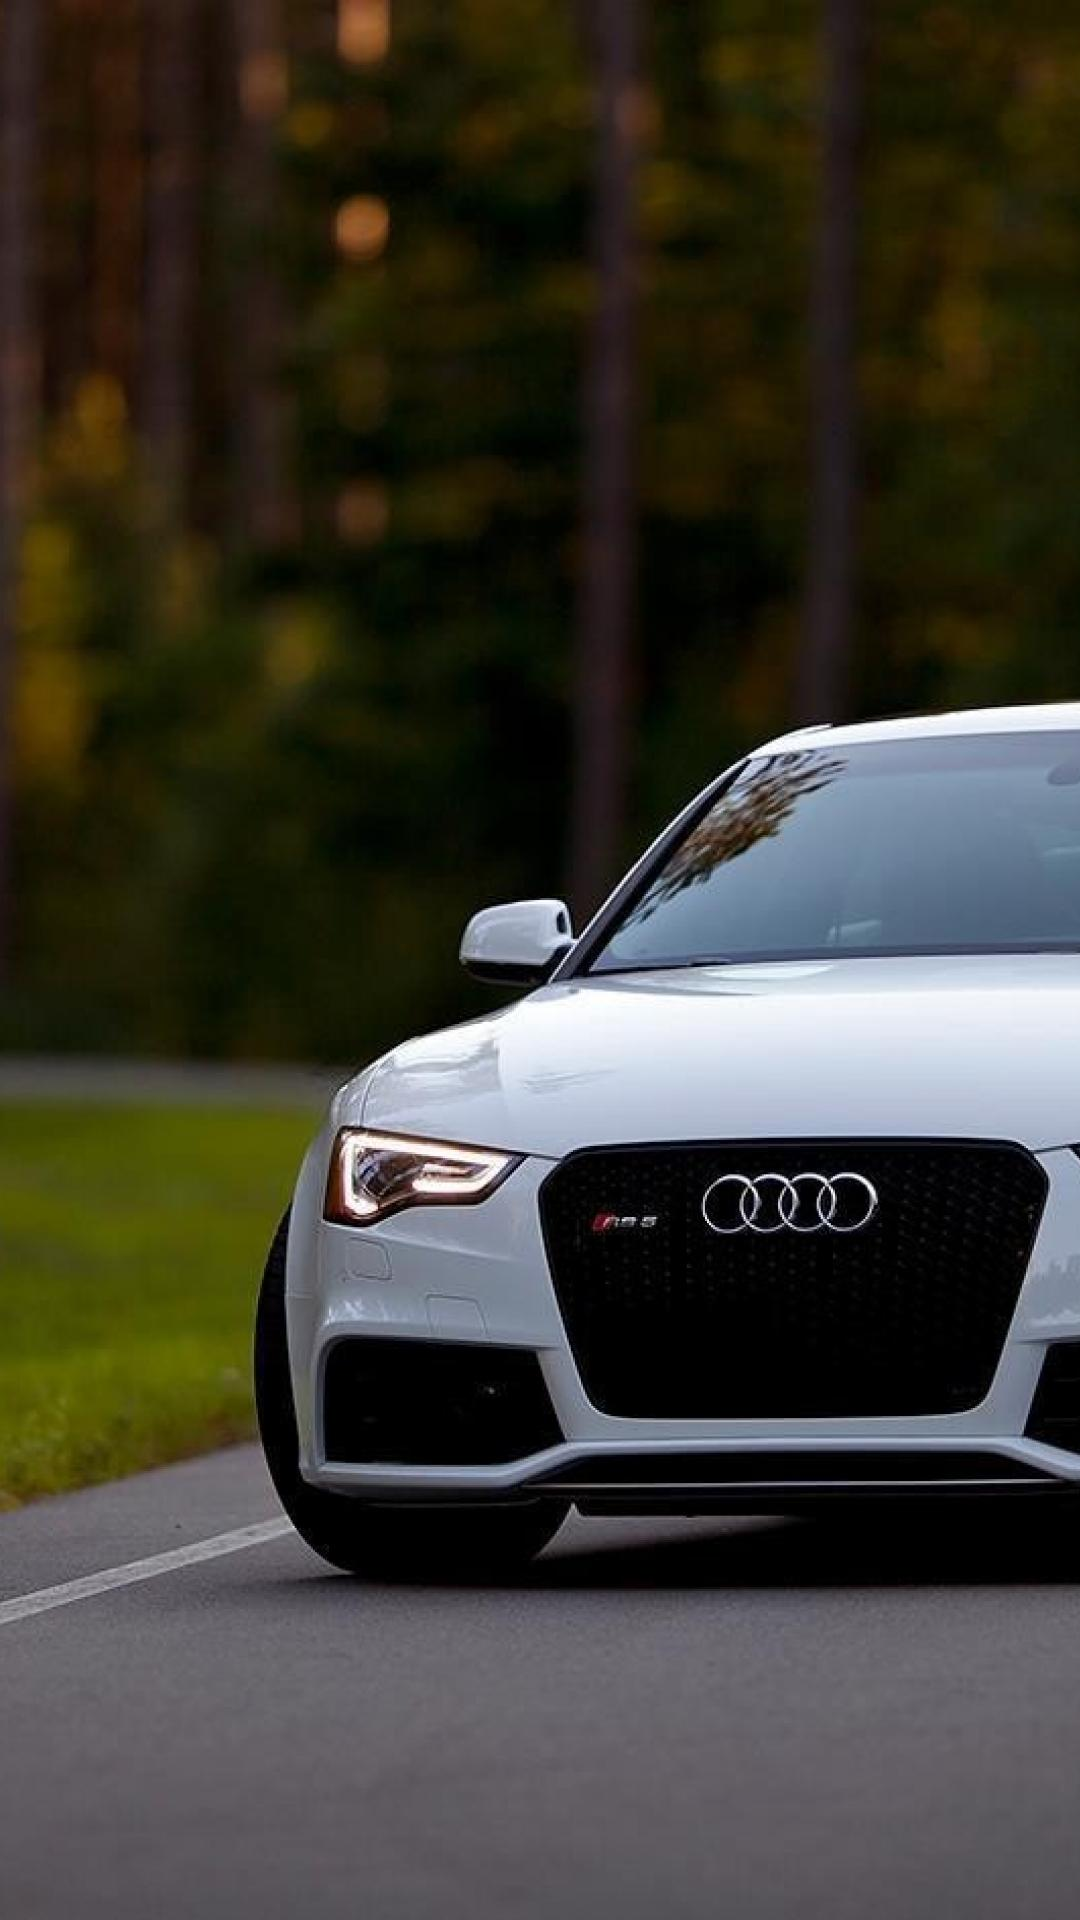 The apple iphone car apps can do some pretty amazing things. View Iphone Audi Car Wallpaper Png Picture Idokeren